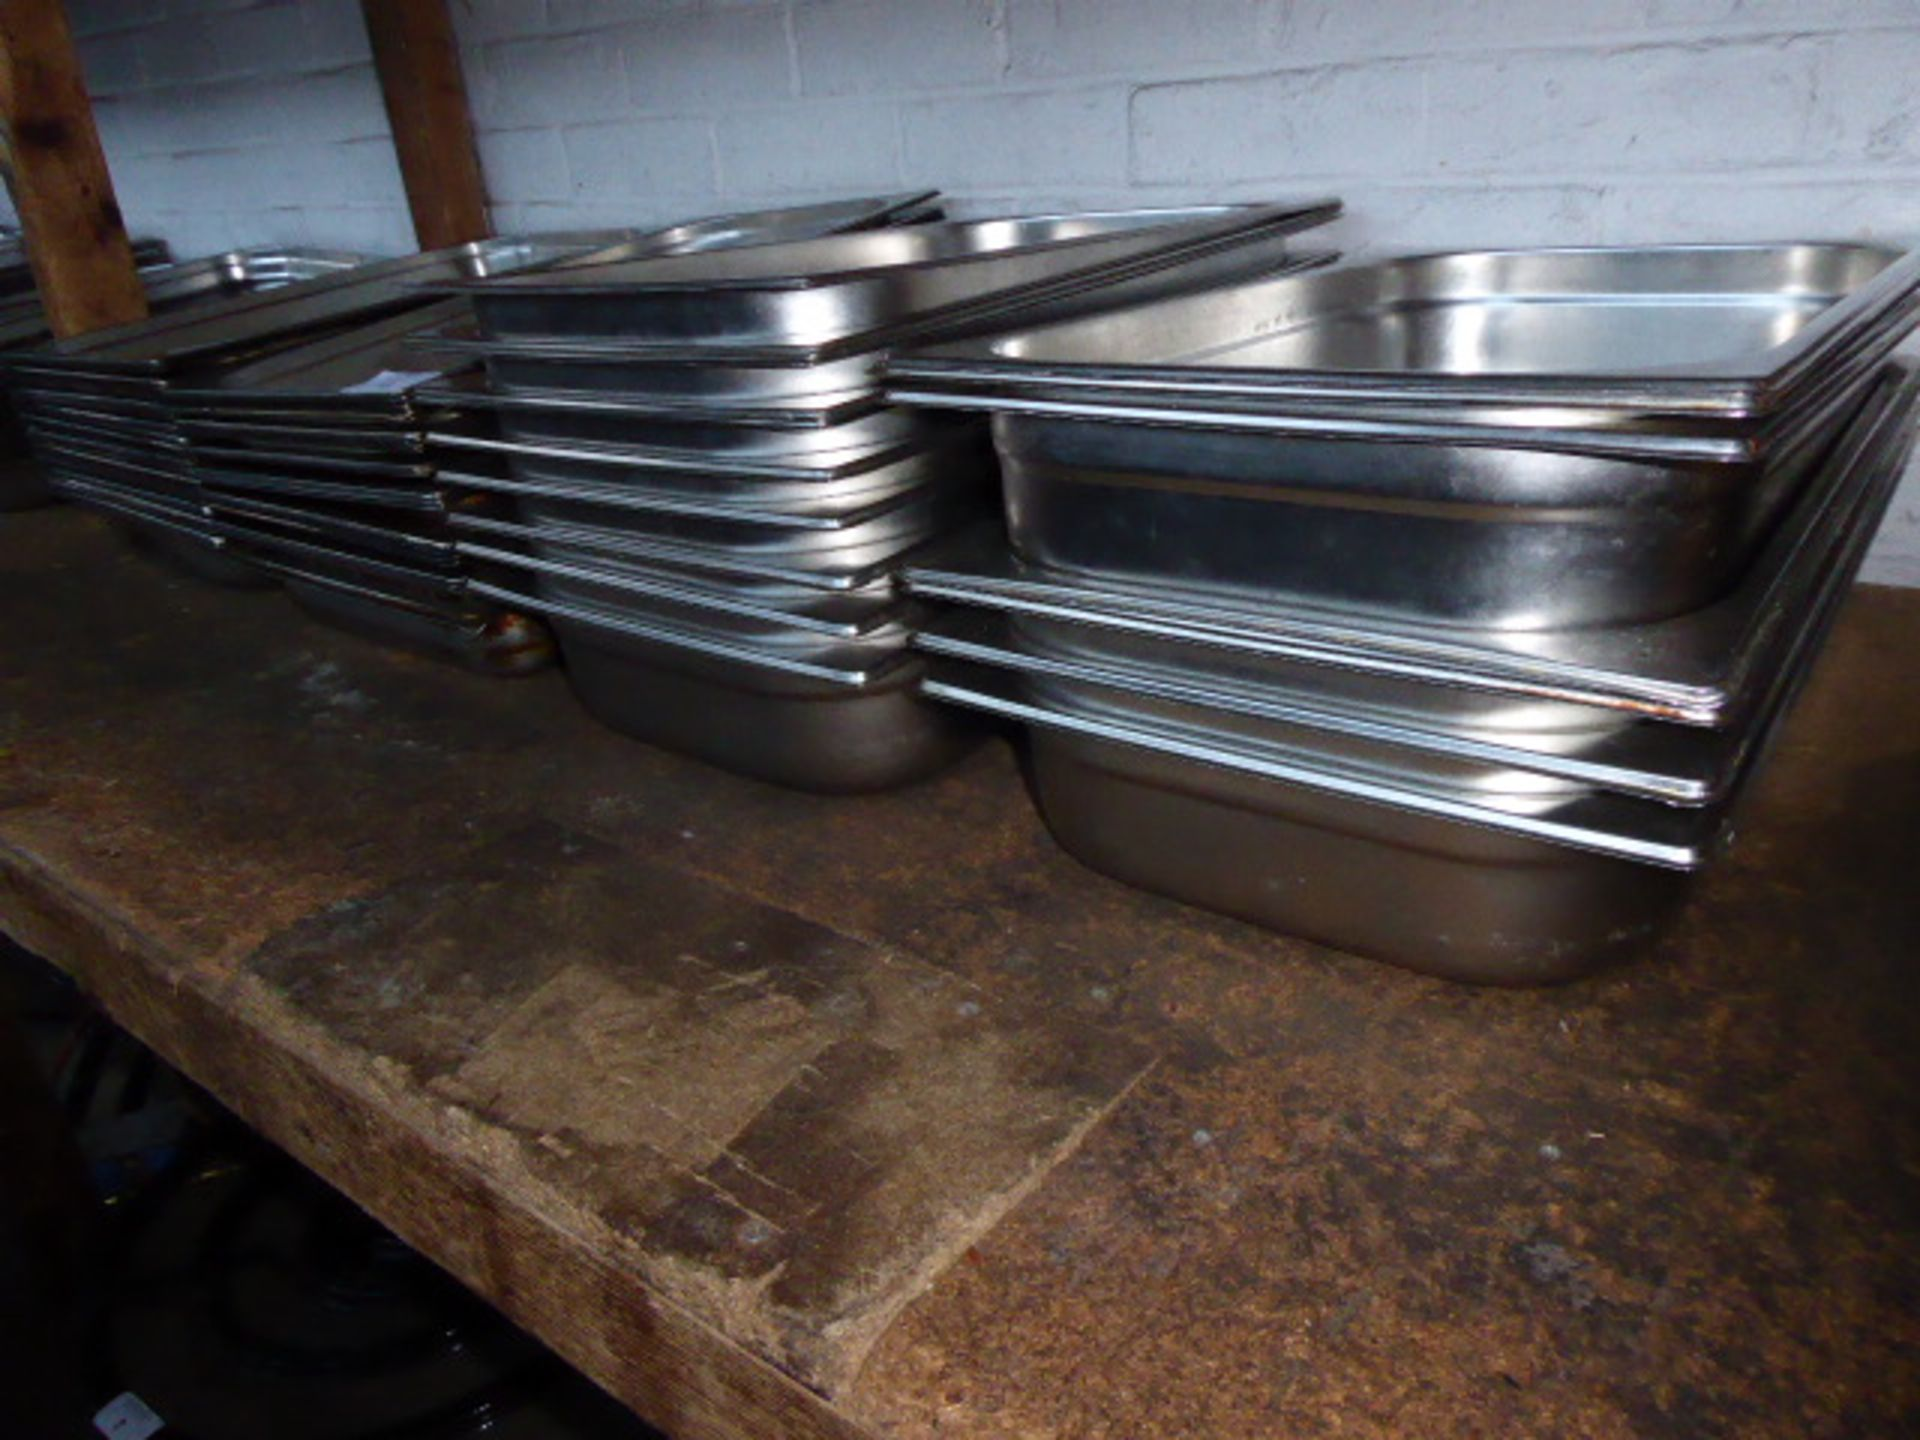 Lot 13 - Approximately sixty stainless steel shallow Gastronorm pans